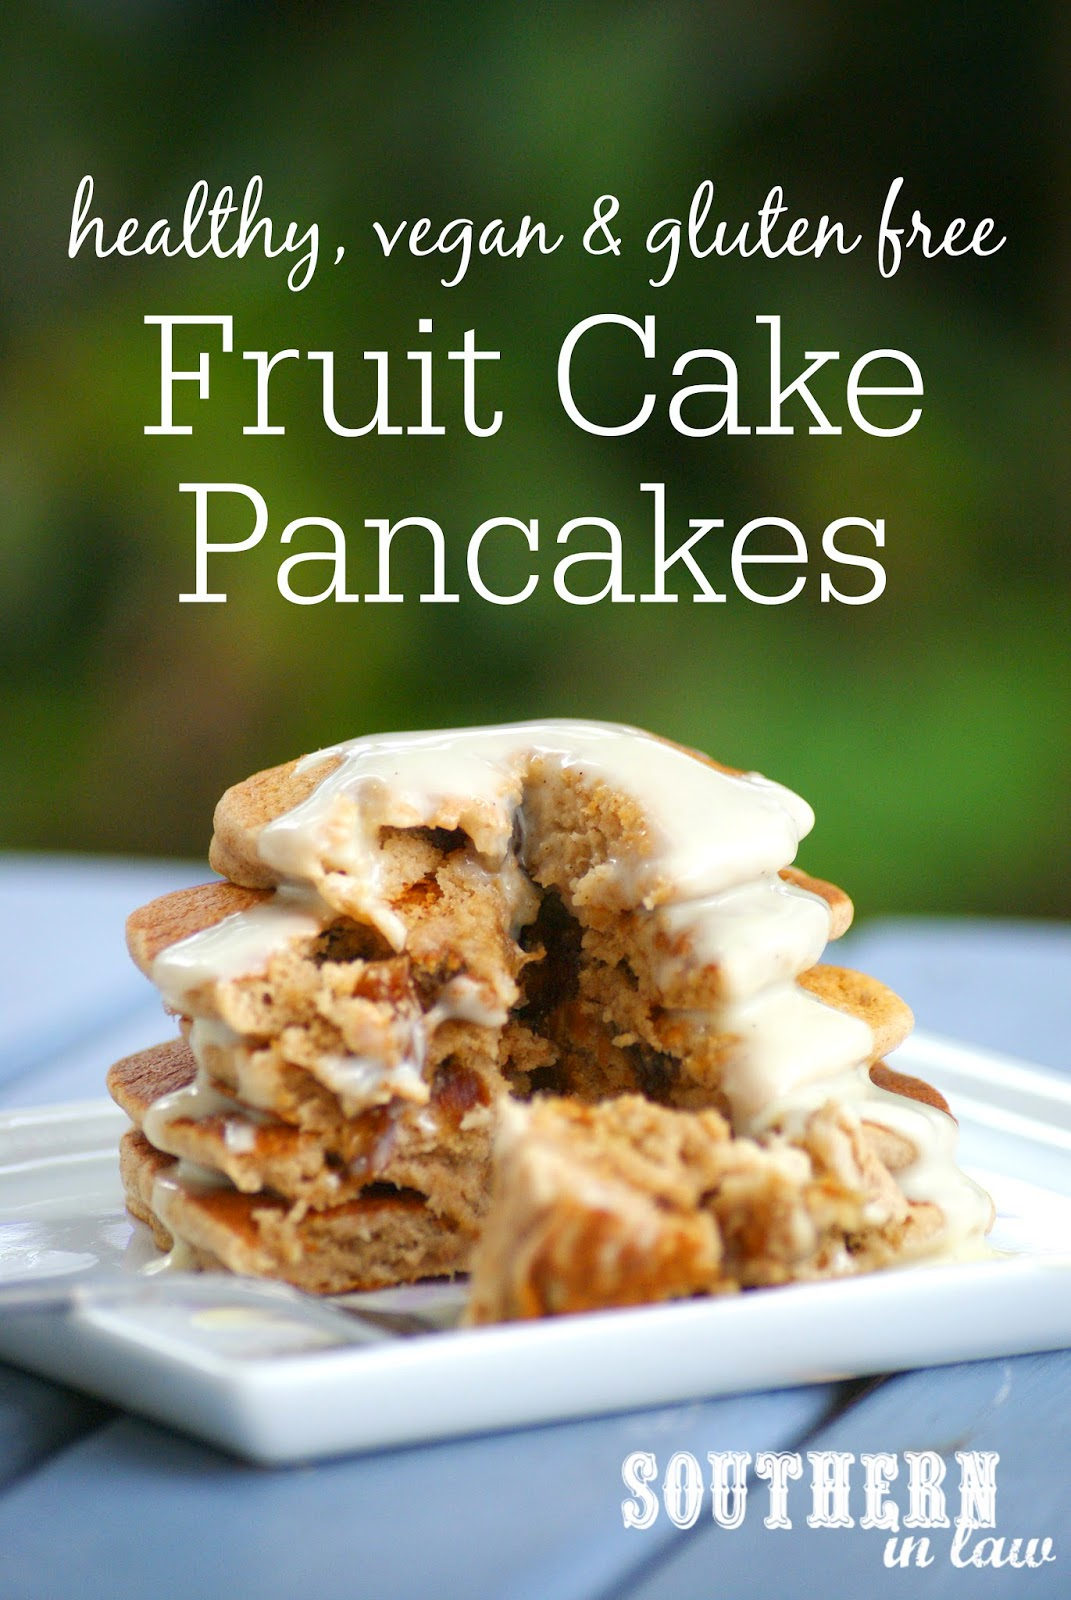 Healthy Fruit Cakes Pancakes Recipe for Christmas - low fat, gluten free, vegan, healthy, sugar free, dairy free, egg free